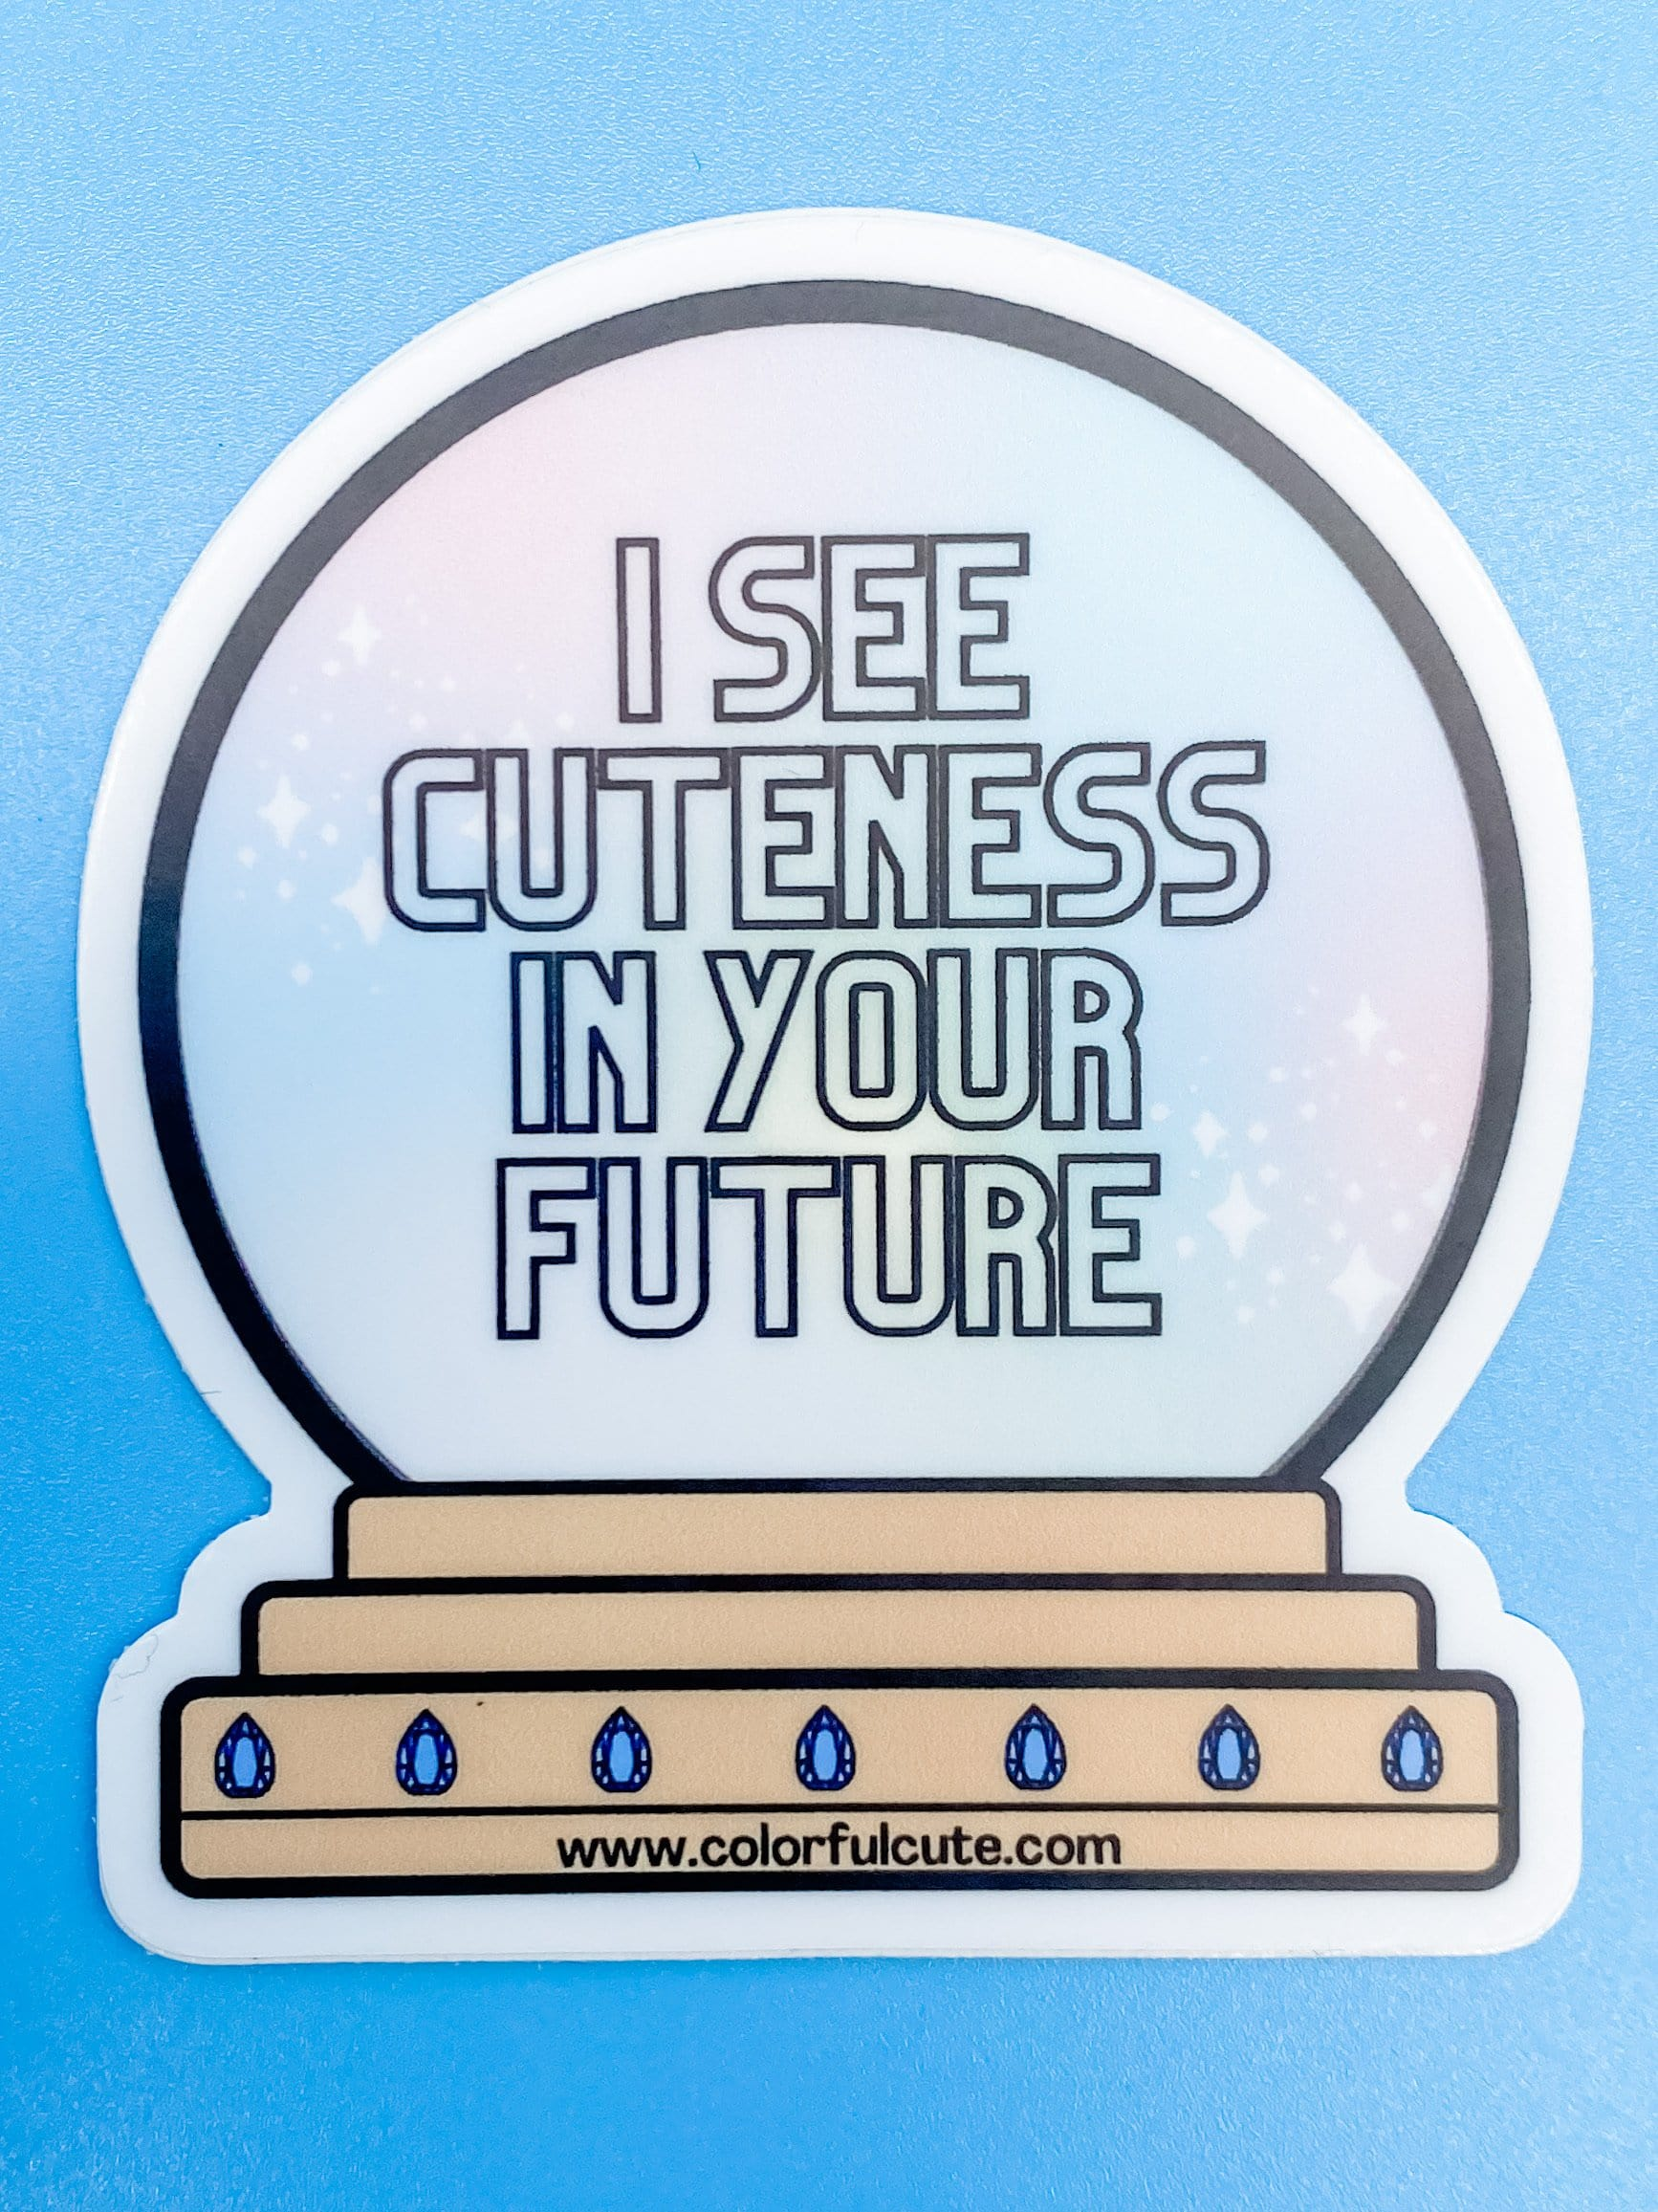 I See Cuteness in Your Future Crystal Ball Sticker